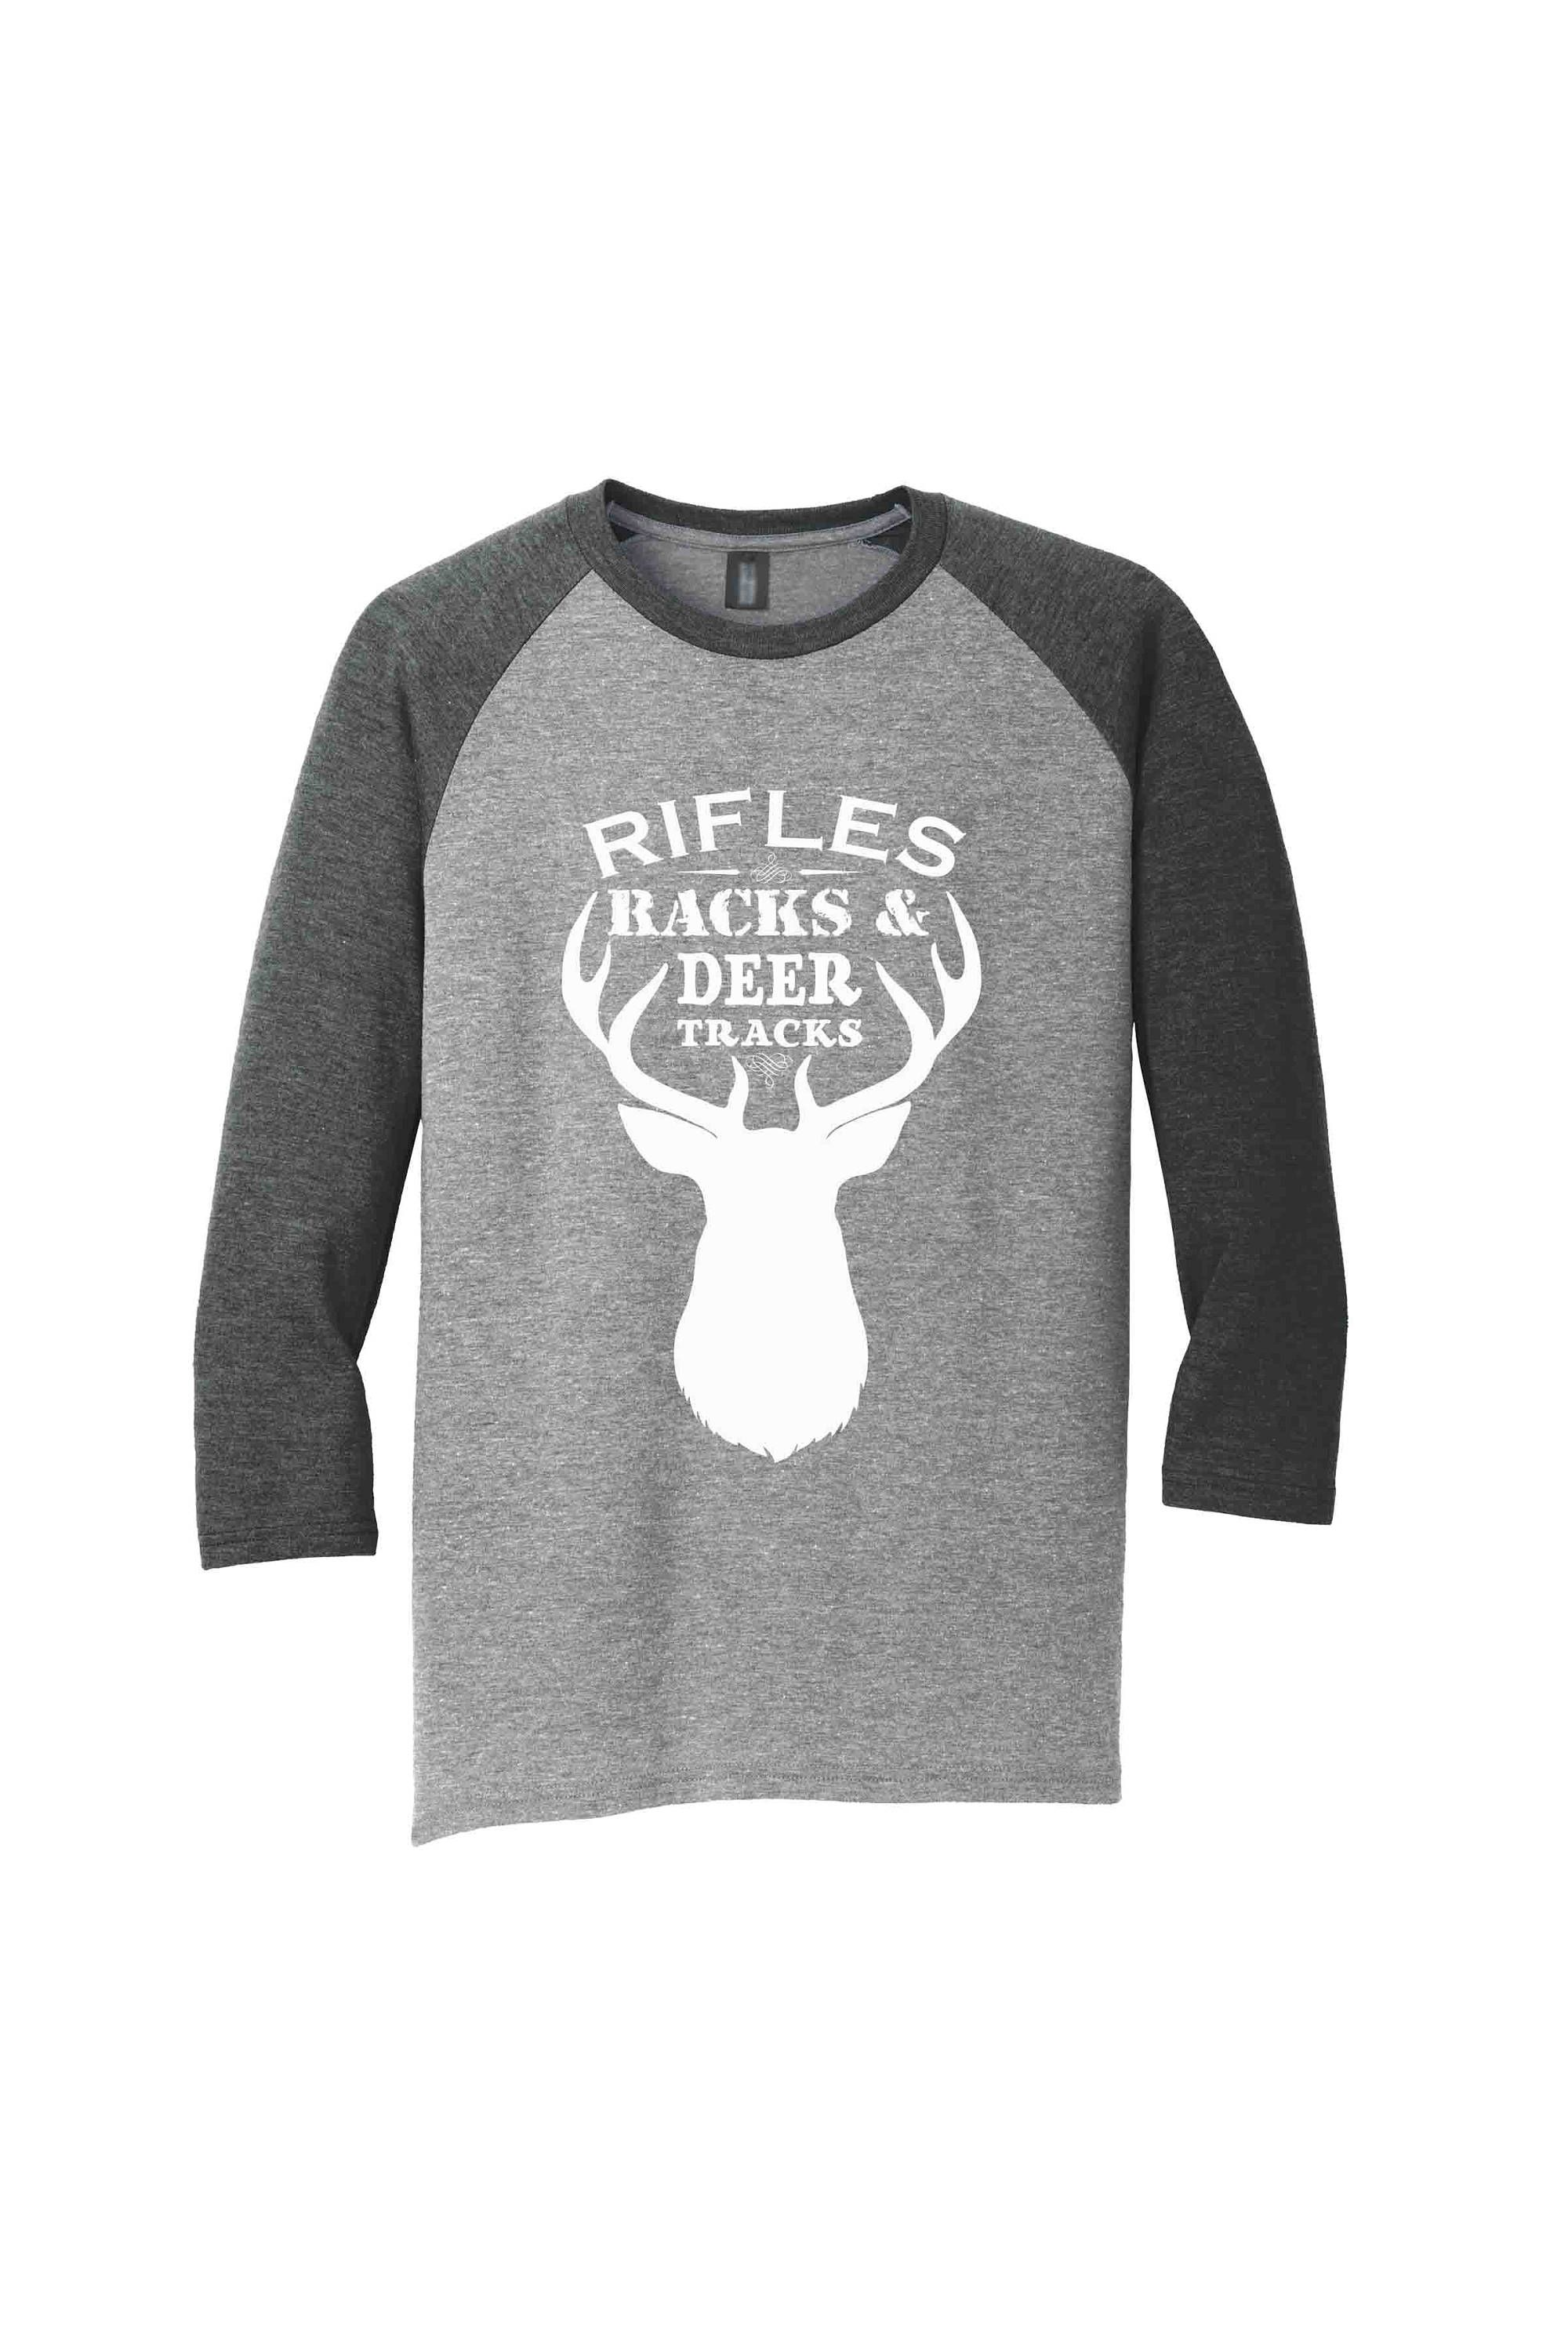 No Hunting   Deer  Sweatshirt    Sizes//Colors